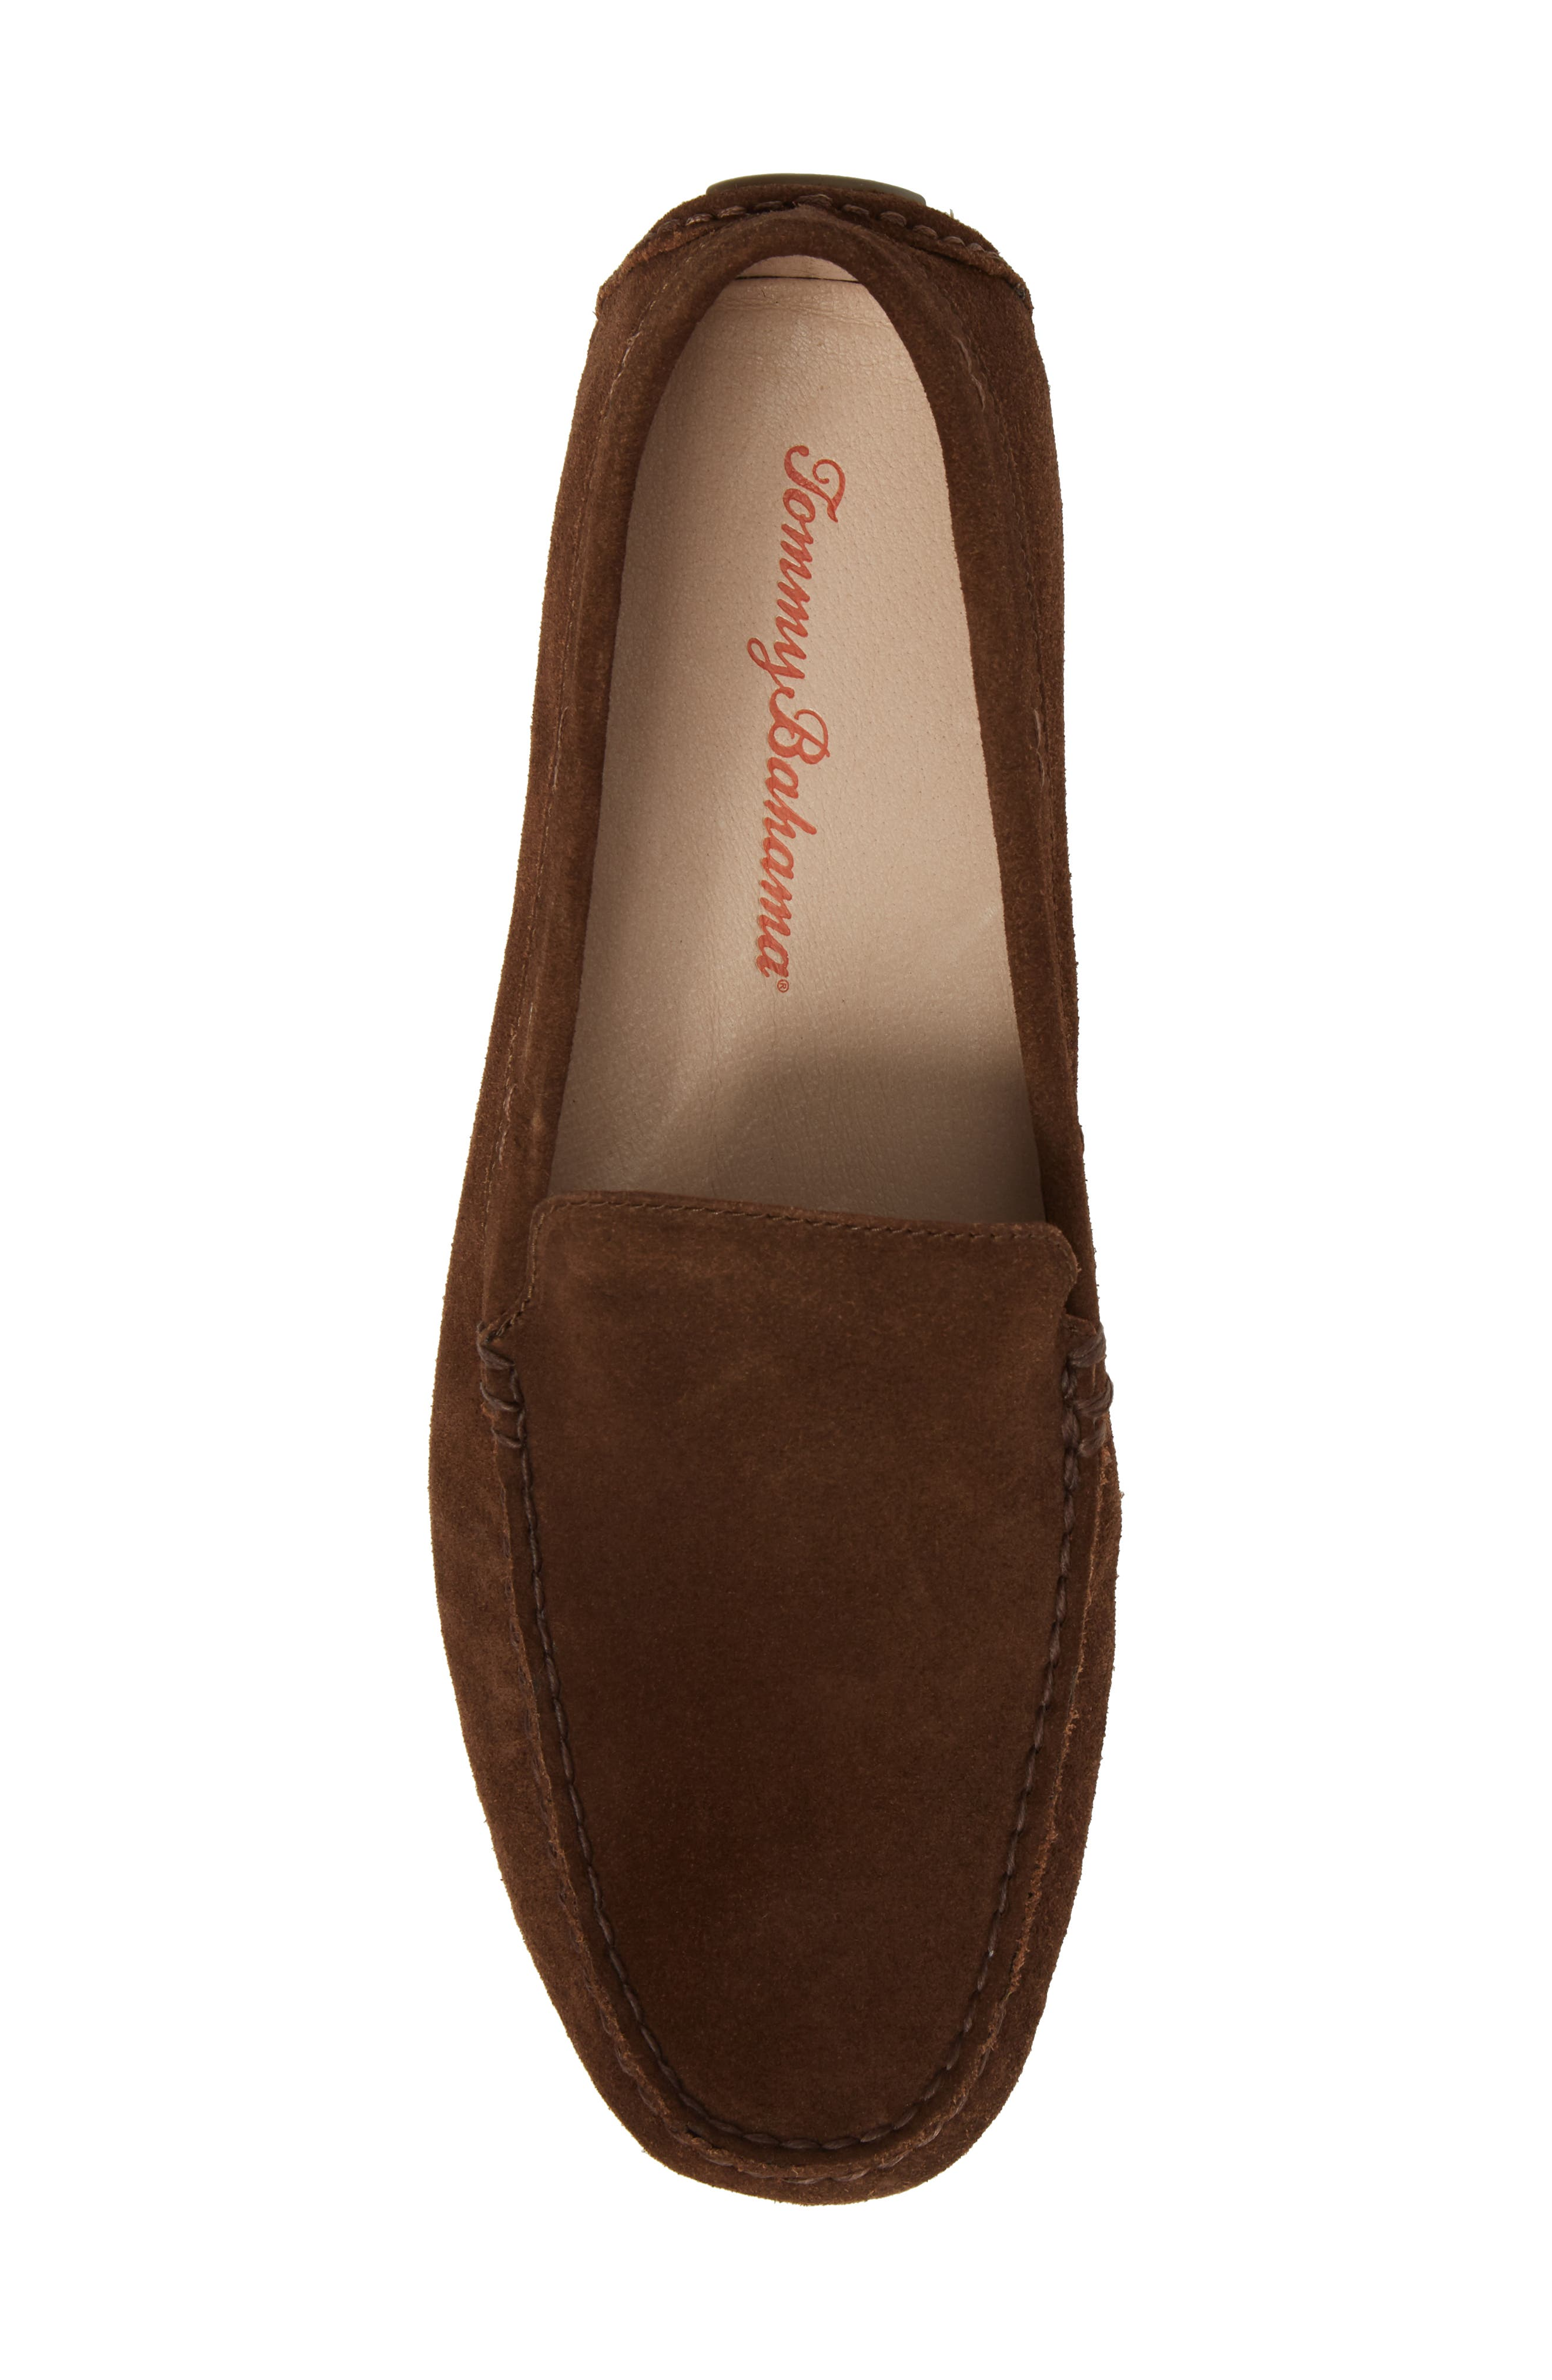 Pagota Driving Loafer,                             Alternate thumbnail 26, color,